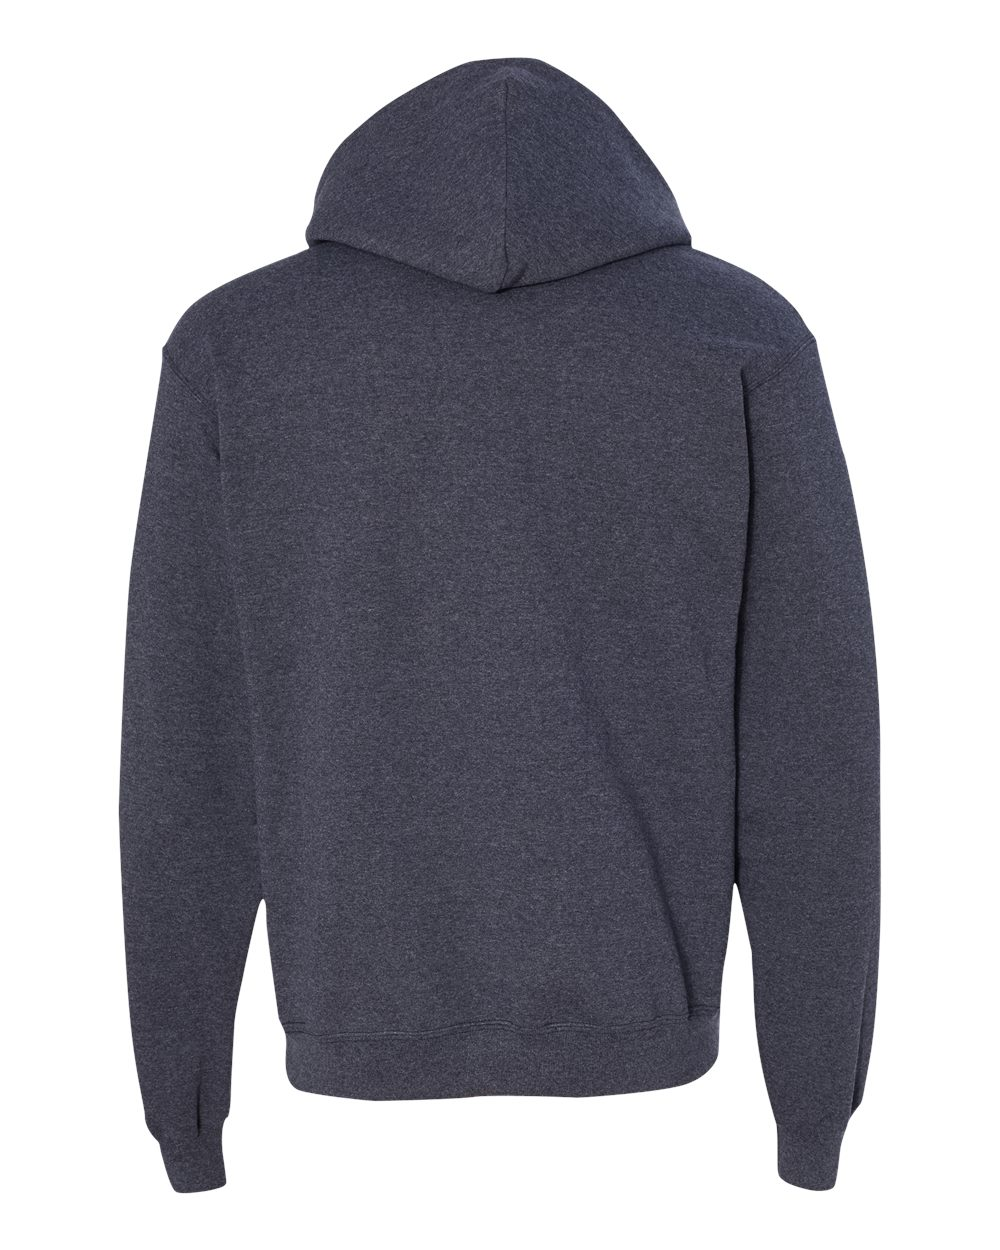 Champion-Mens-Double-Dry-Eco-Hooded-Sweatshirt-Hoodie-Pullover-S700-up-to-3XL miniature 31